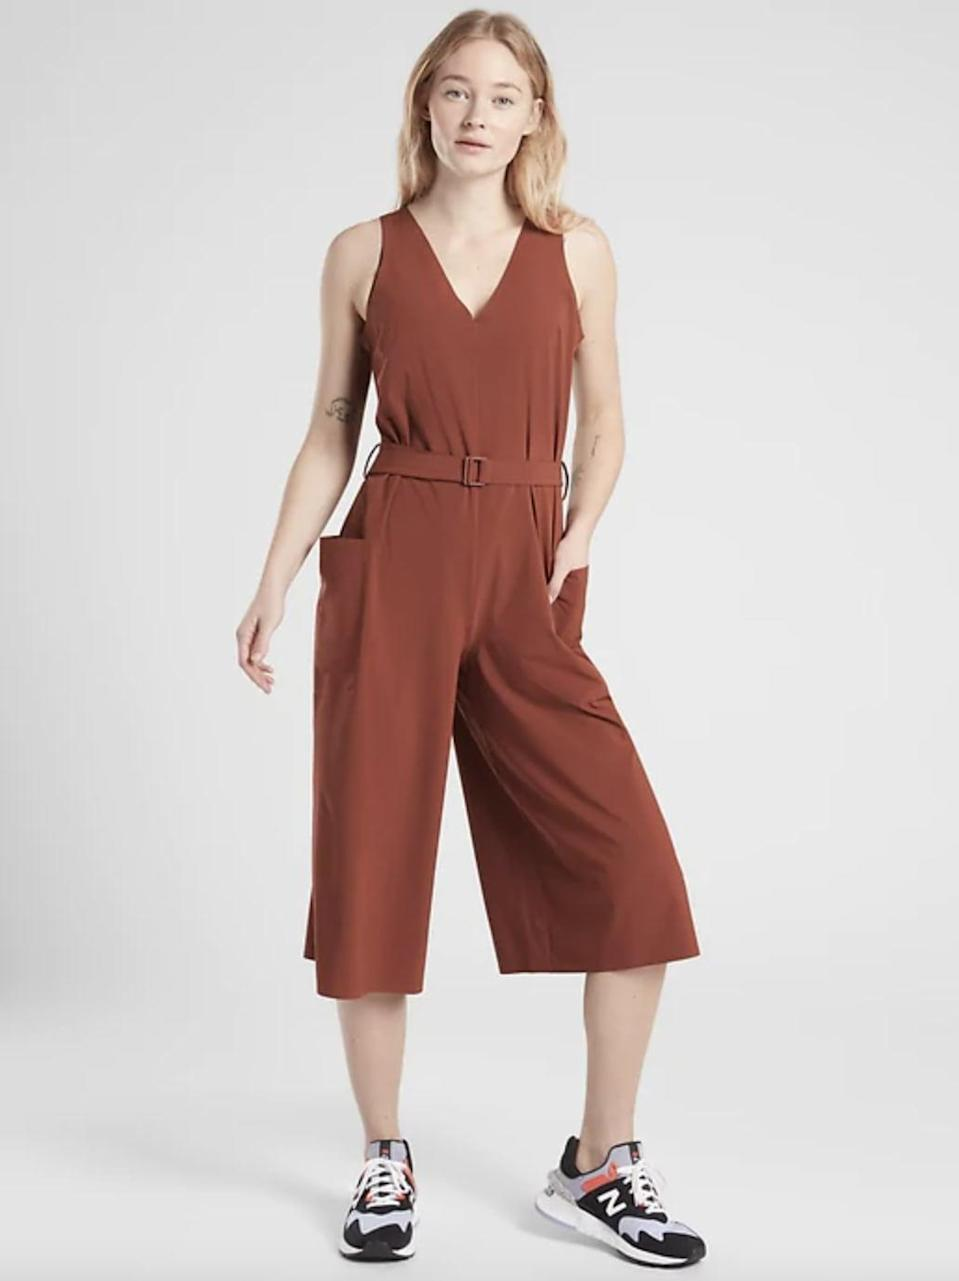 <p>This <span>Athleta Sarasota Jumpsuit</span> ($30, originally $148) is an awesome deal. You can wear it over a long-sleeve shirt and under a denim jacket when it gets chilly.</p>